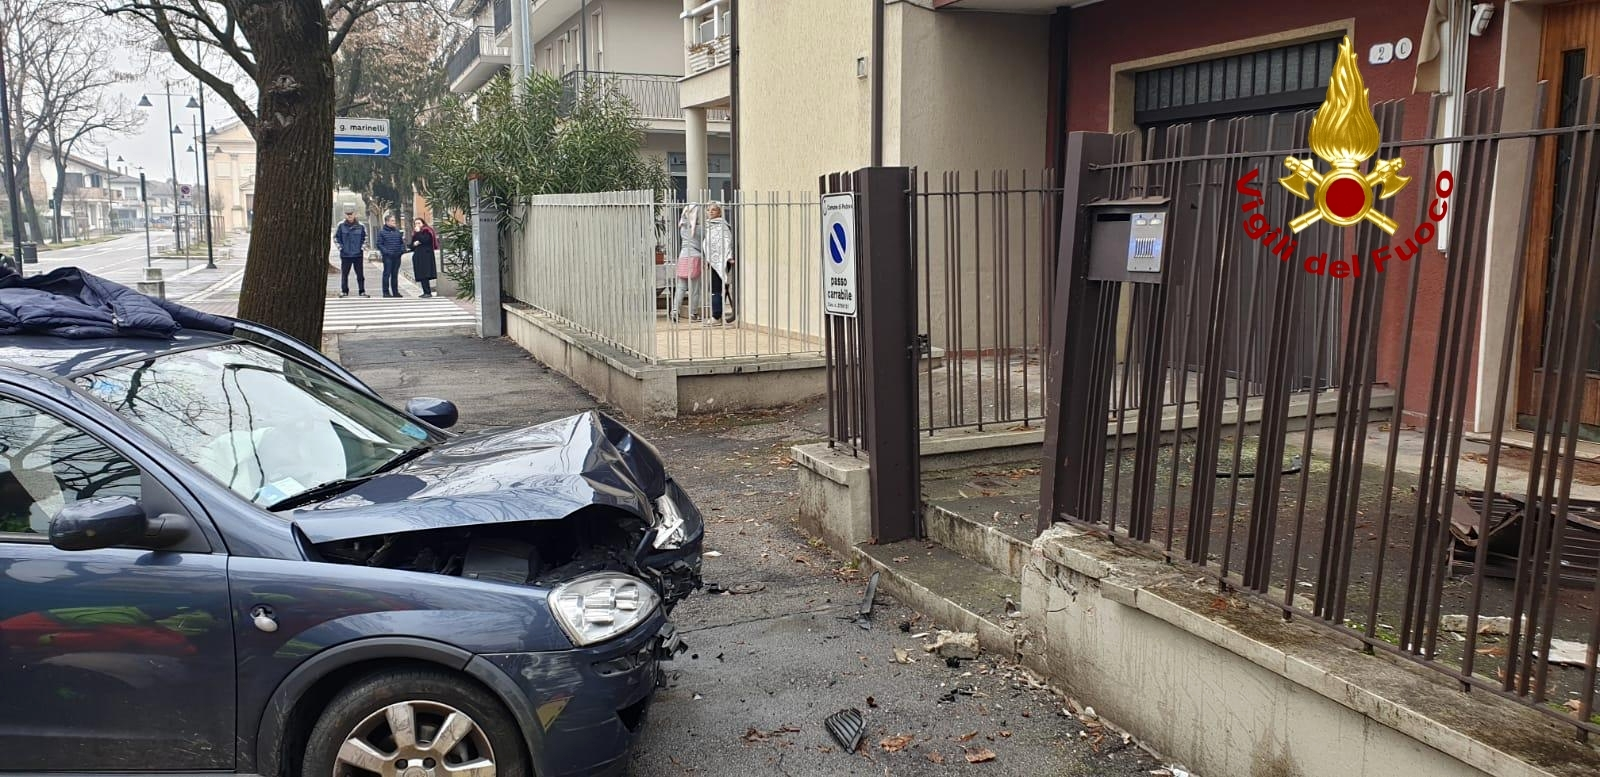 schianto auto incidente-2